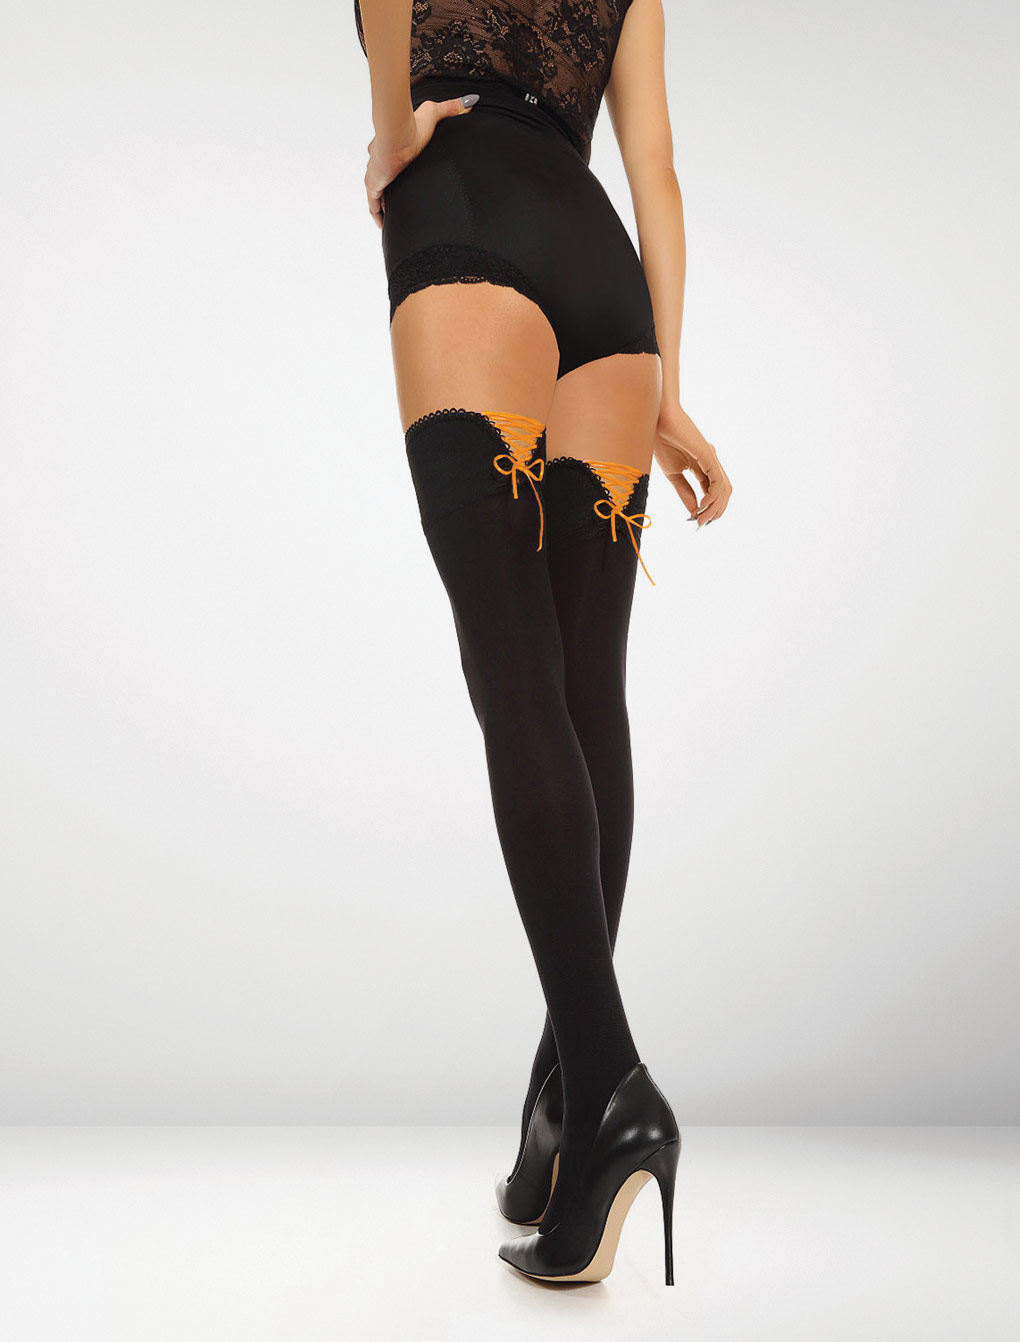 Bologna 80 Denier Hold Ups Perfect Fit - Black / Orange Delight